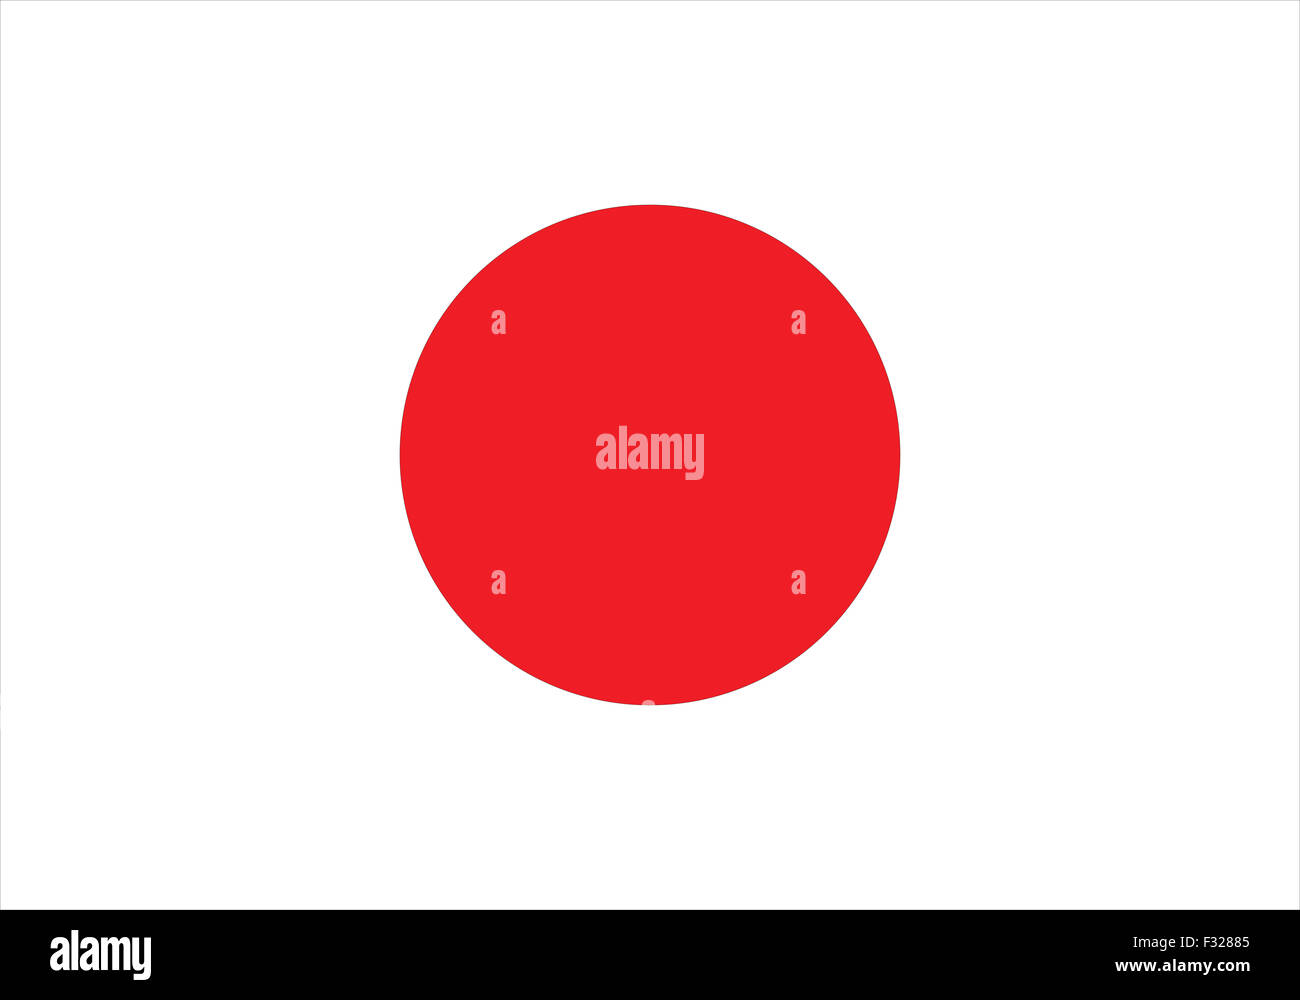 Flag of Japan. Vector illustration of the flag of the Rising Sun Country - Stock Image